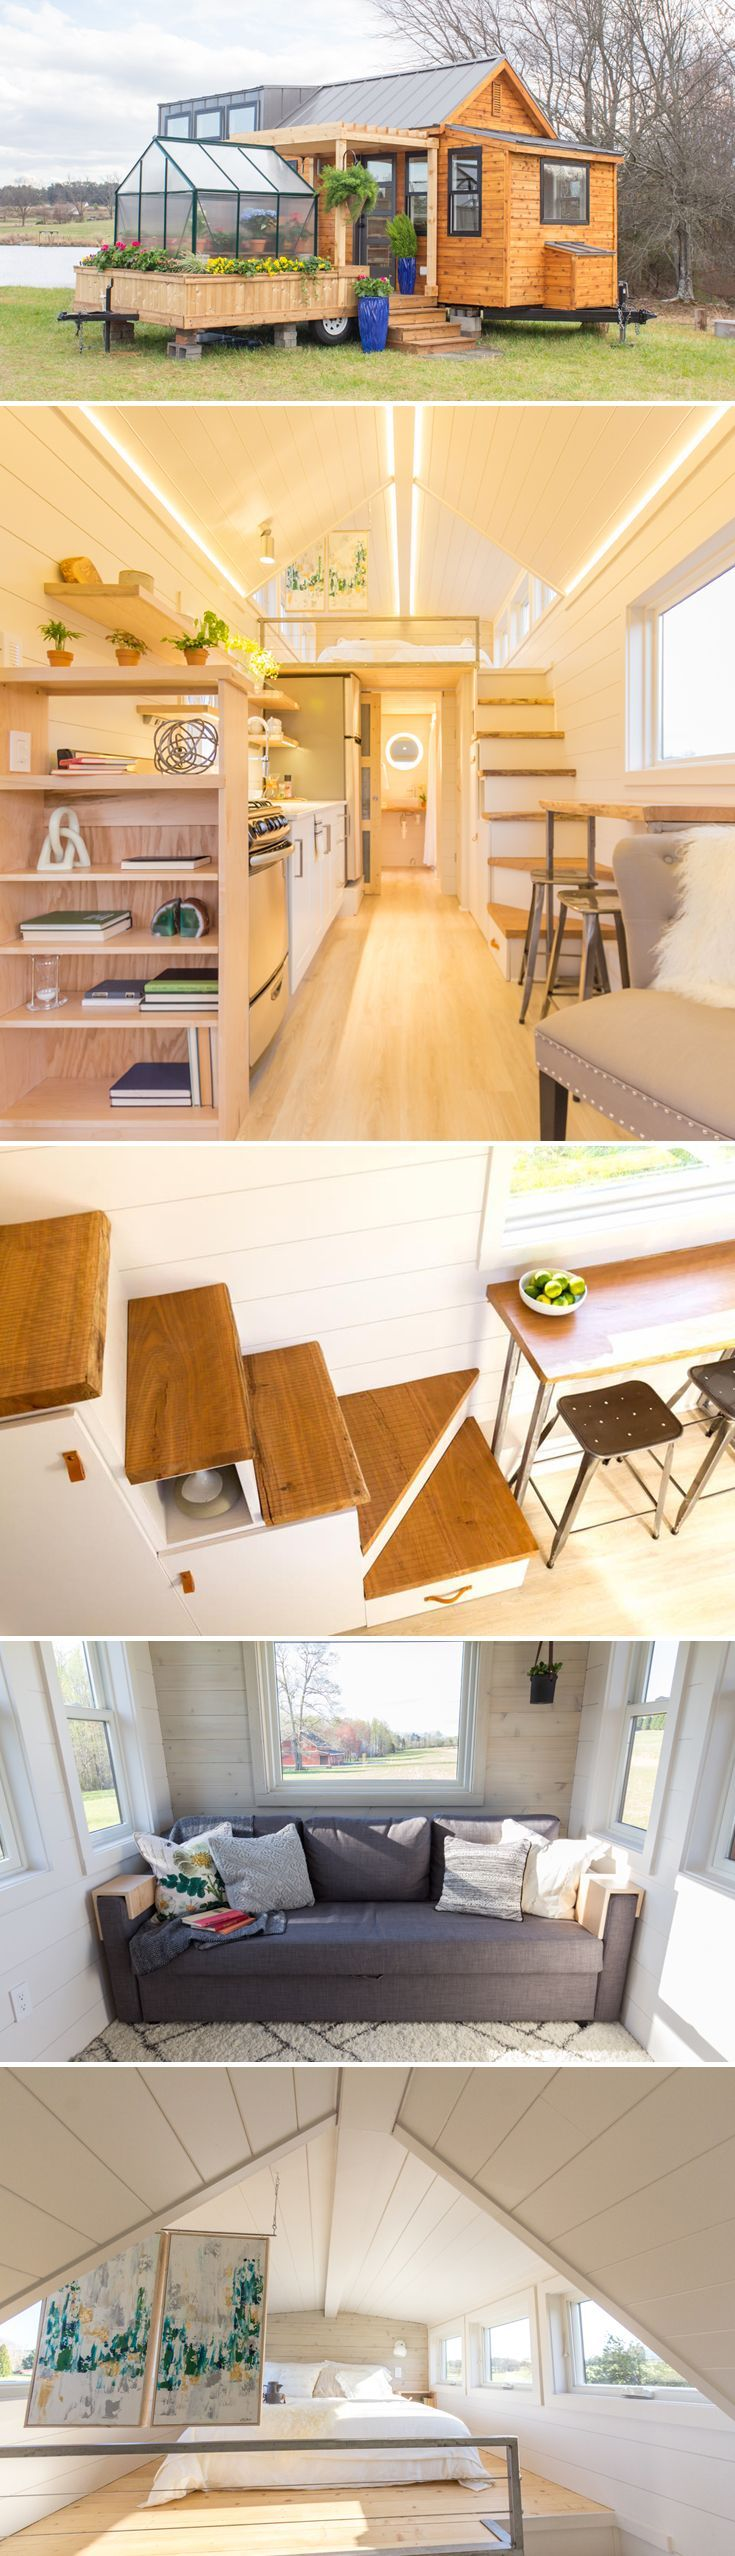 best 25 tiny modular homes ideas on pinterest dream house